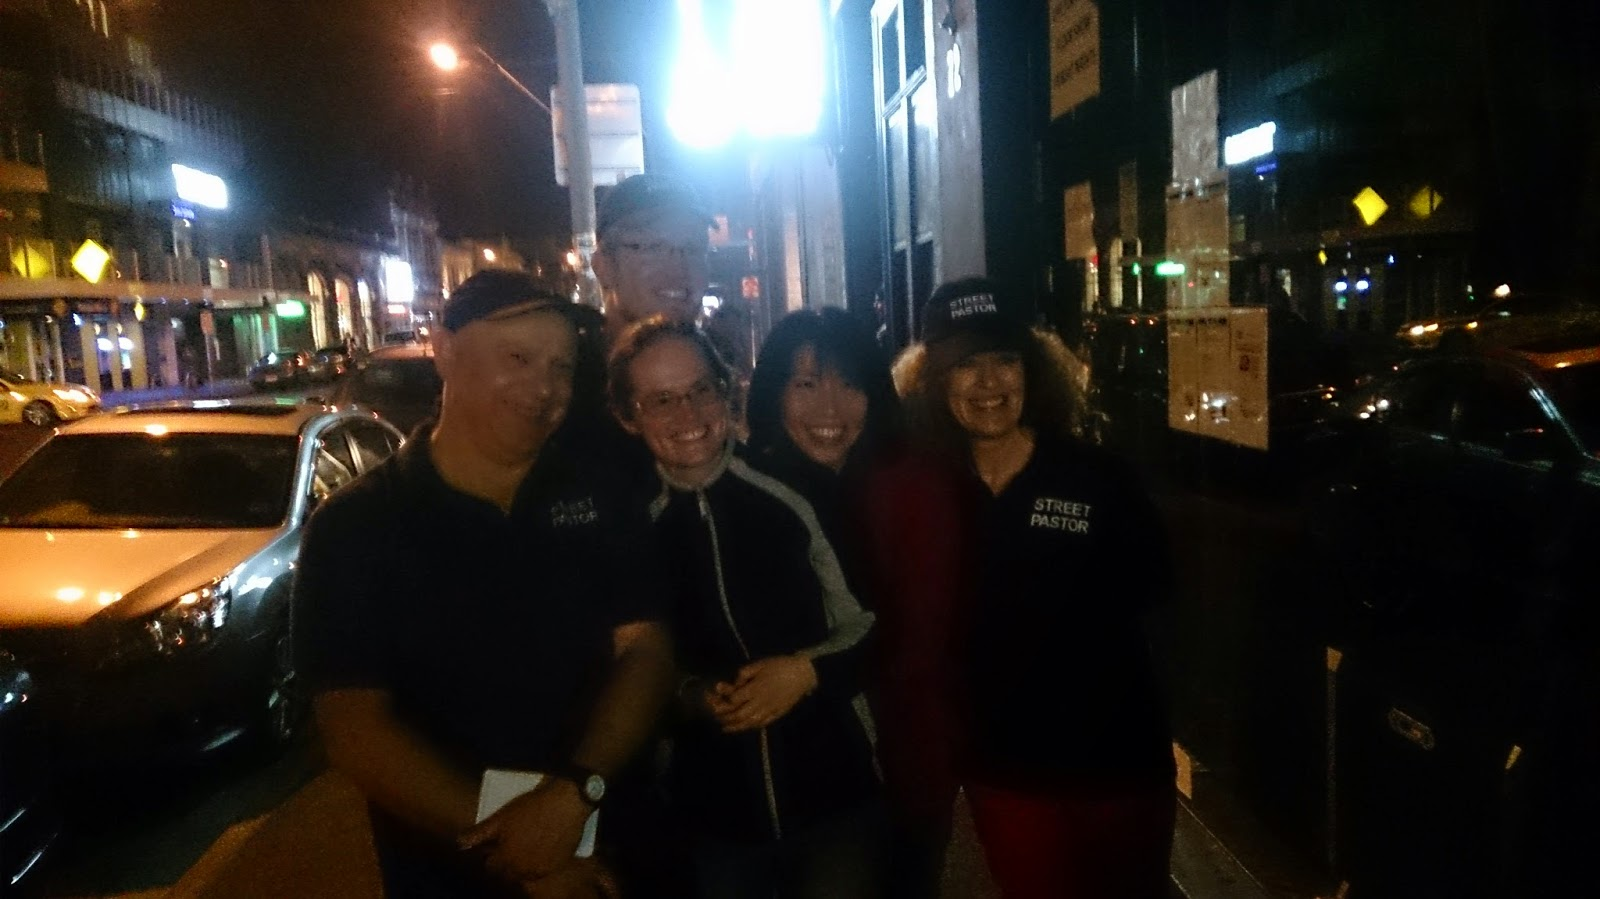 Us and the Street Pastors